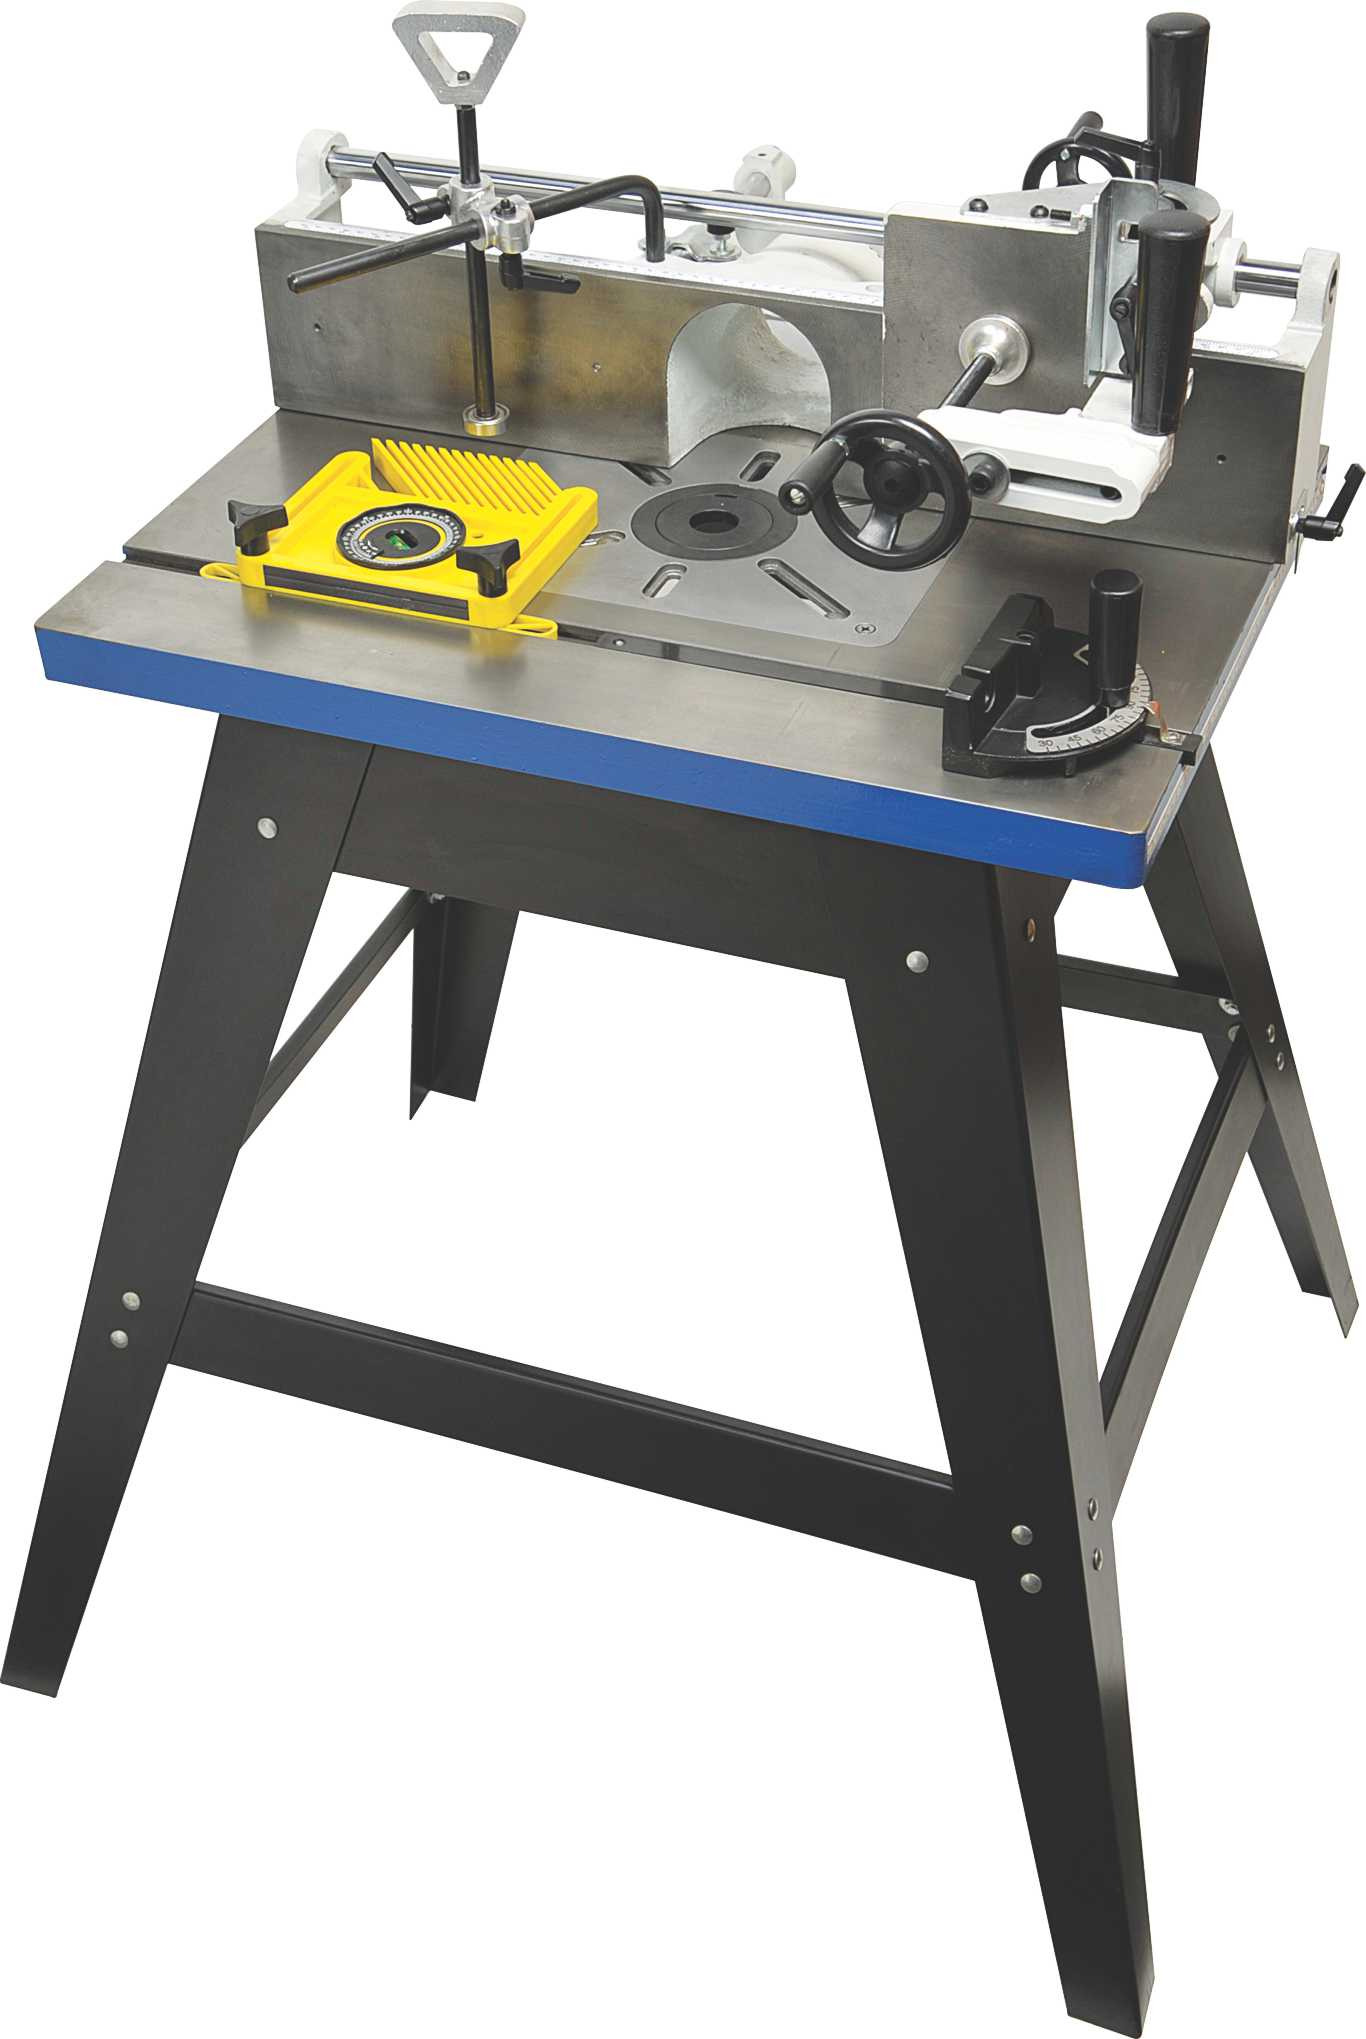 Excalibur Cast Iron Router Table Unique Router Table with Tenon Jig toowoomba Woodworks